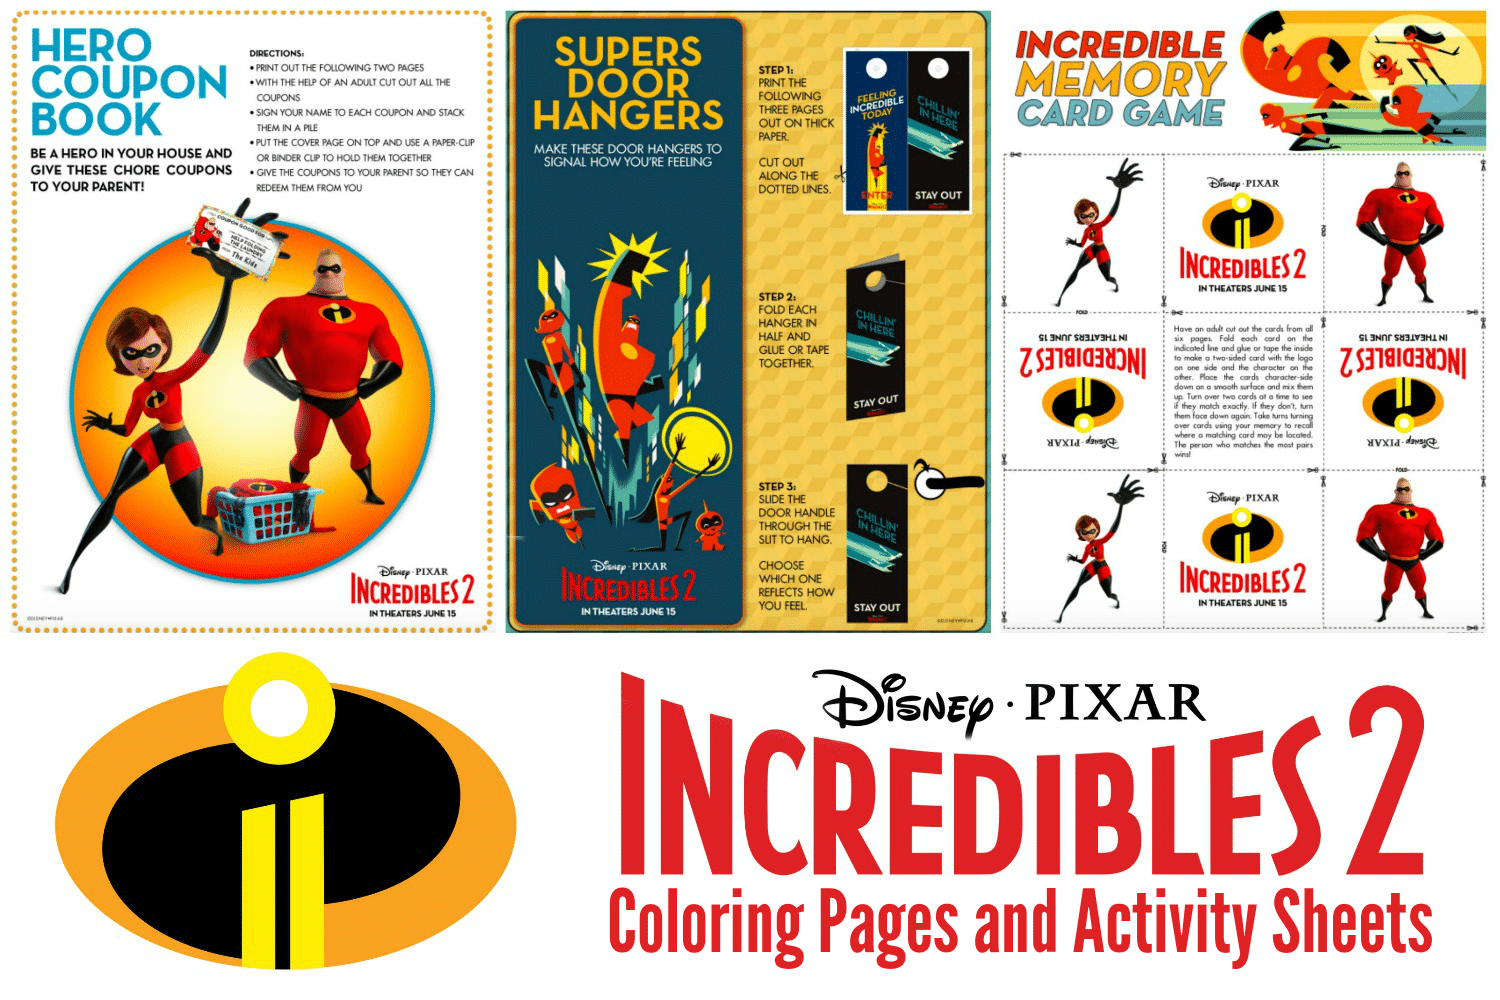 Incredibles 2 Coloring Sheets And Activity Pages